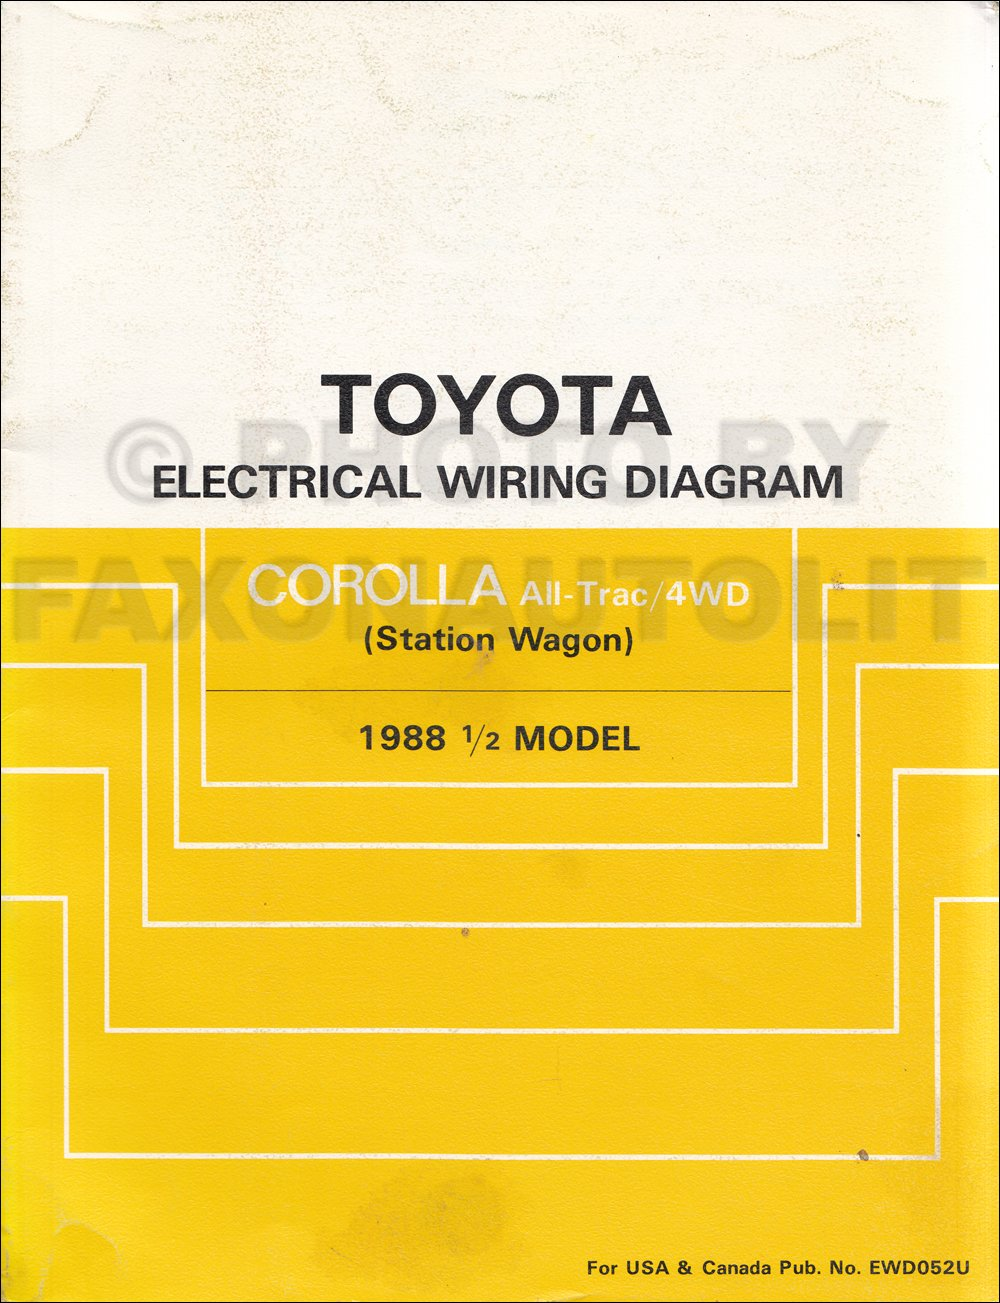 1988 Toyota Corolla All-Trac/4WD Station Wagon Wiring Diagram Manual  Original: Toyota: Amazon.com: Books